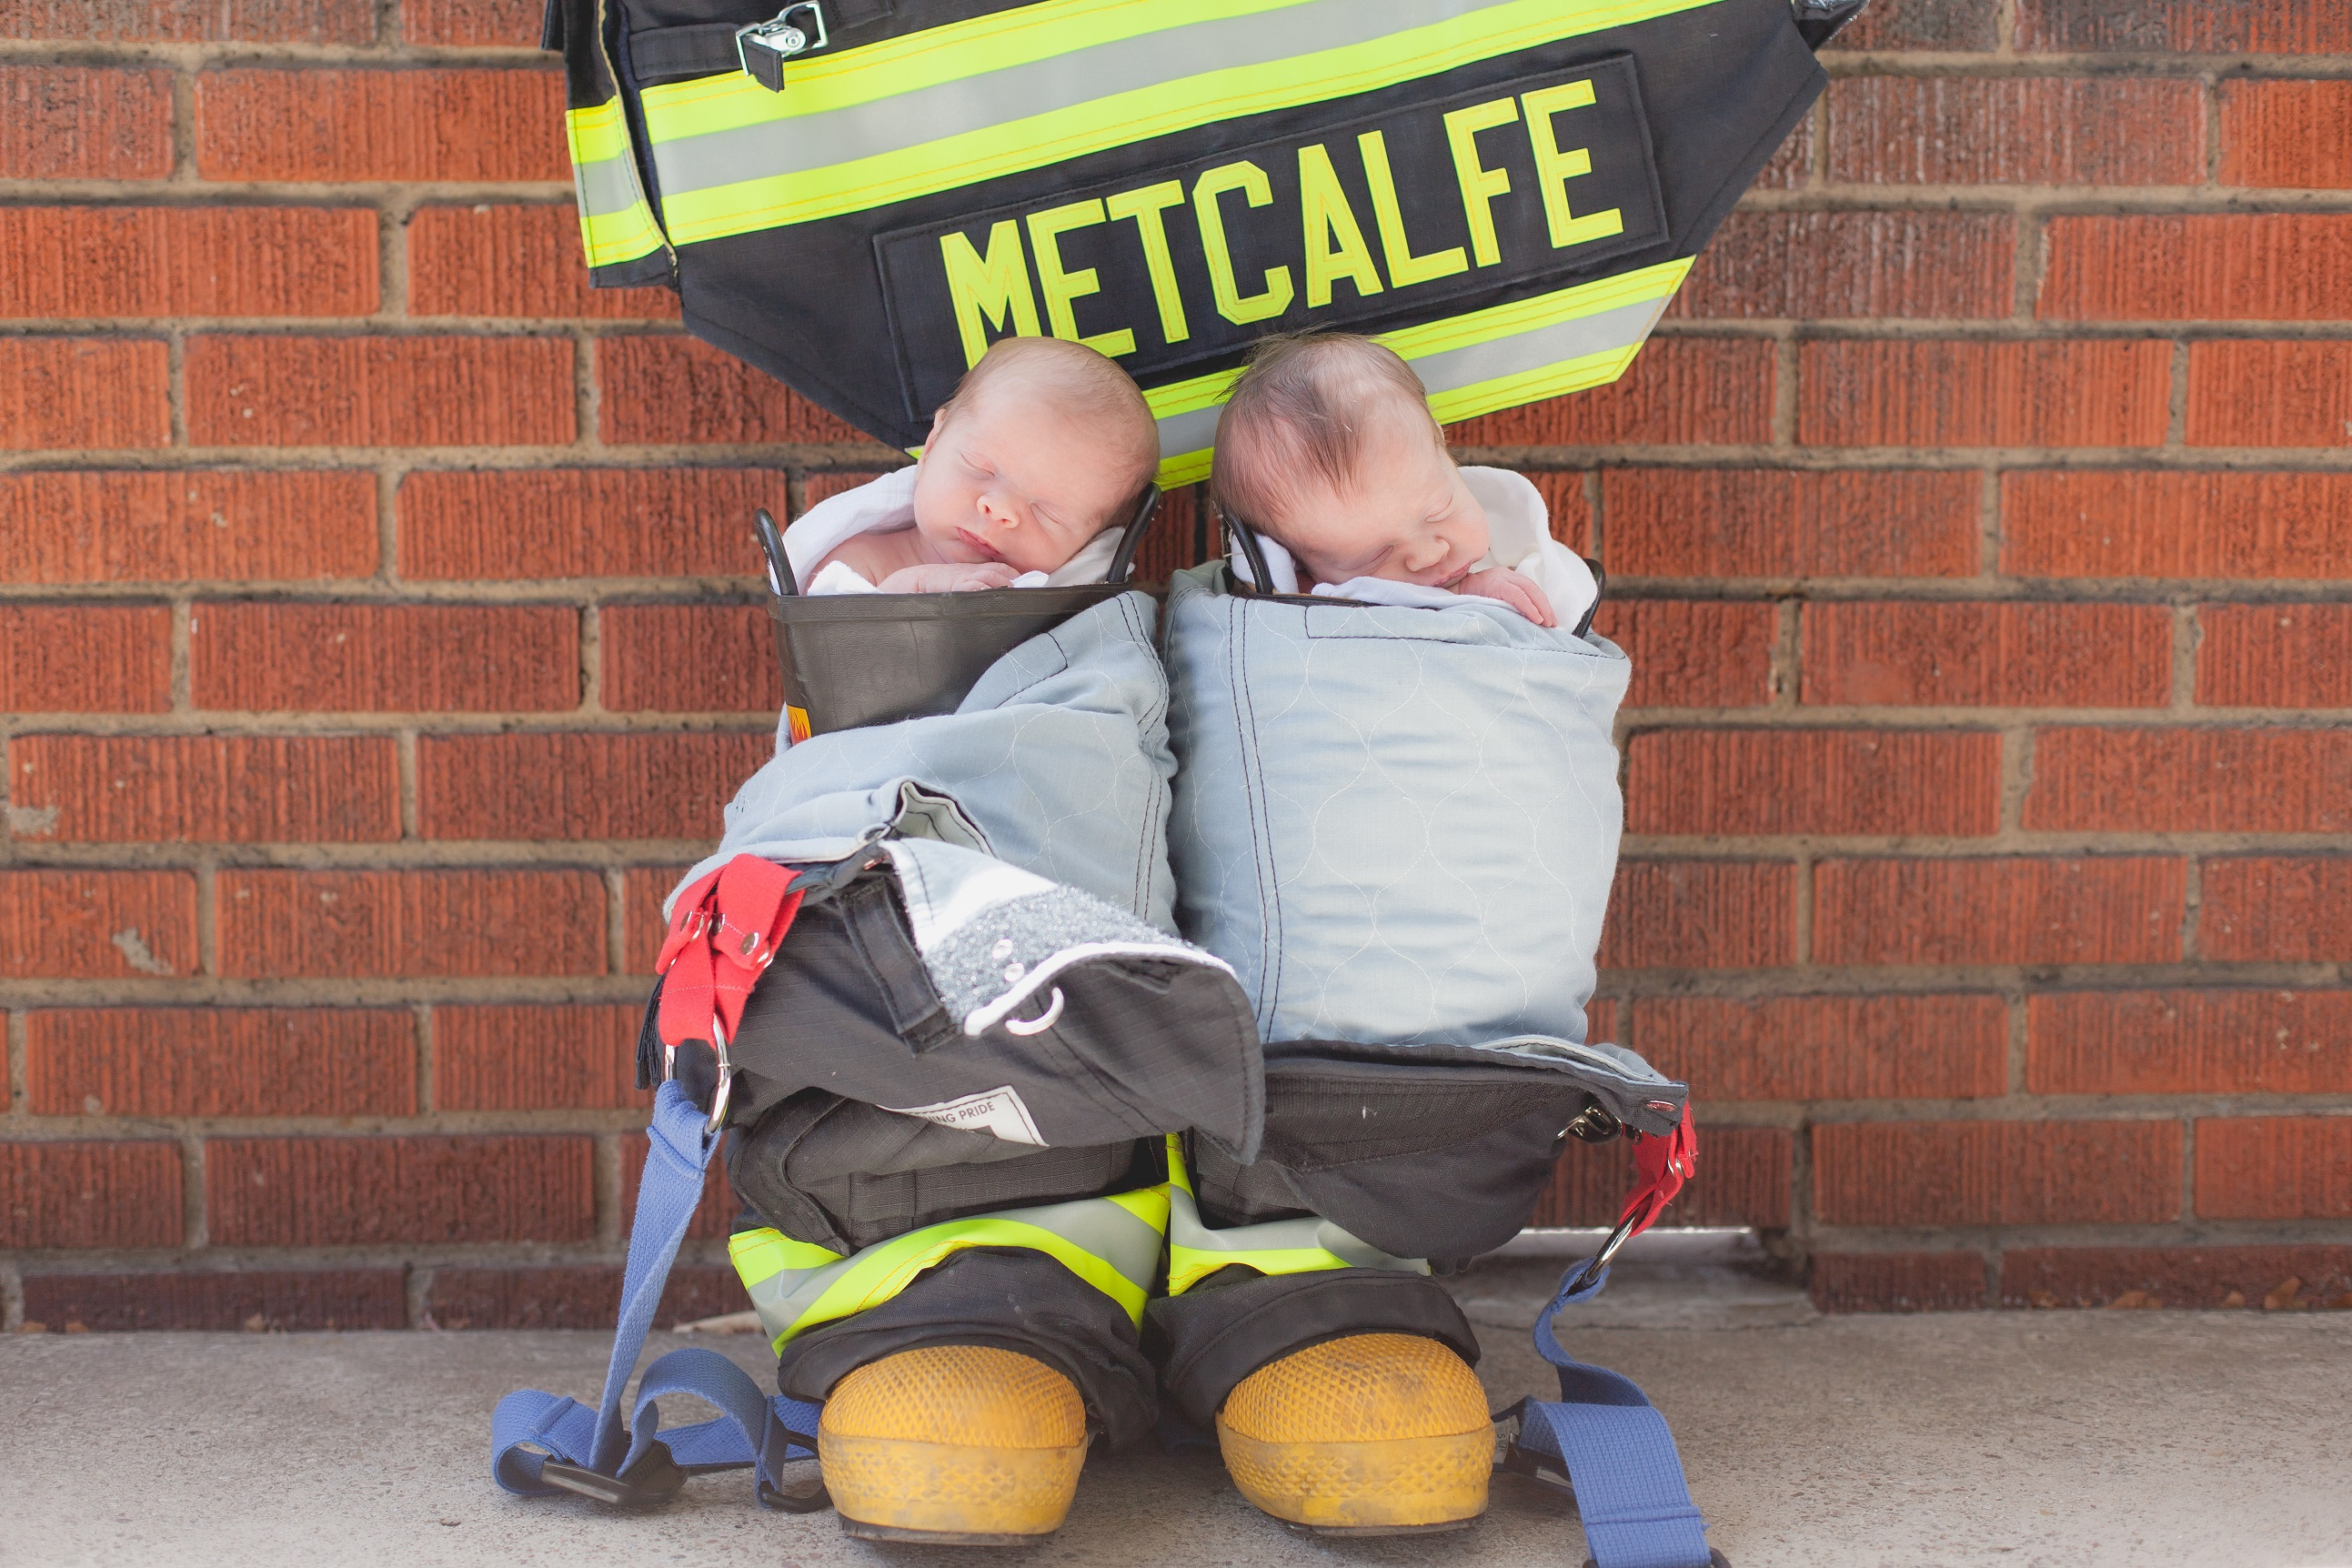 firefighter family photos for twins